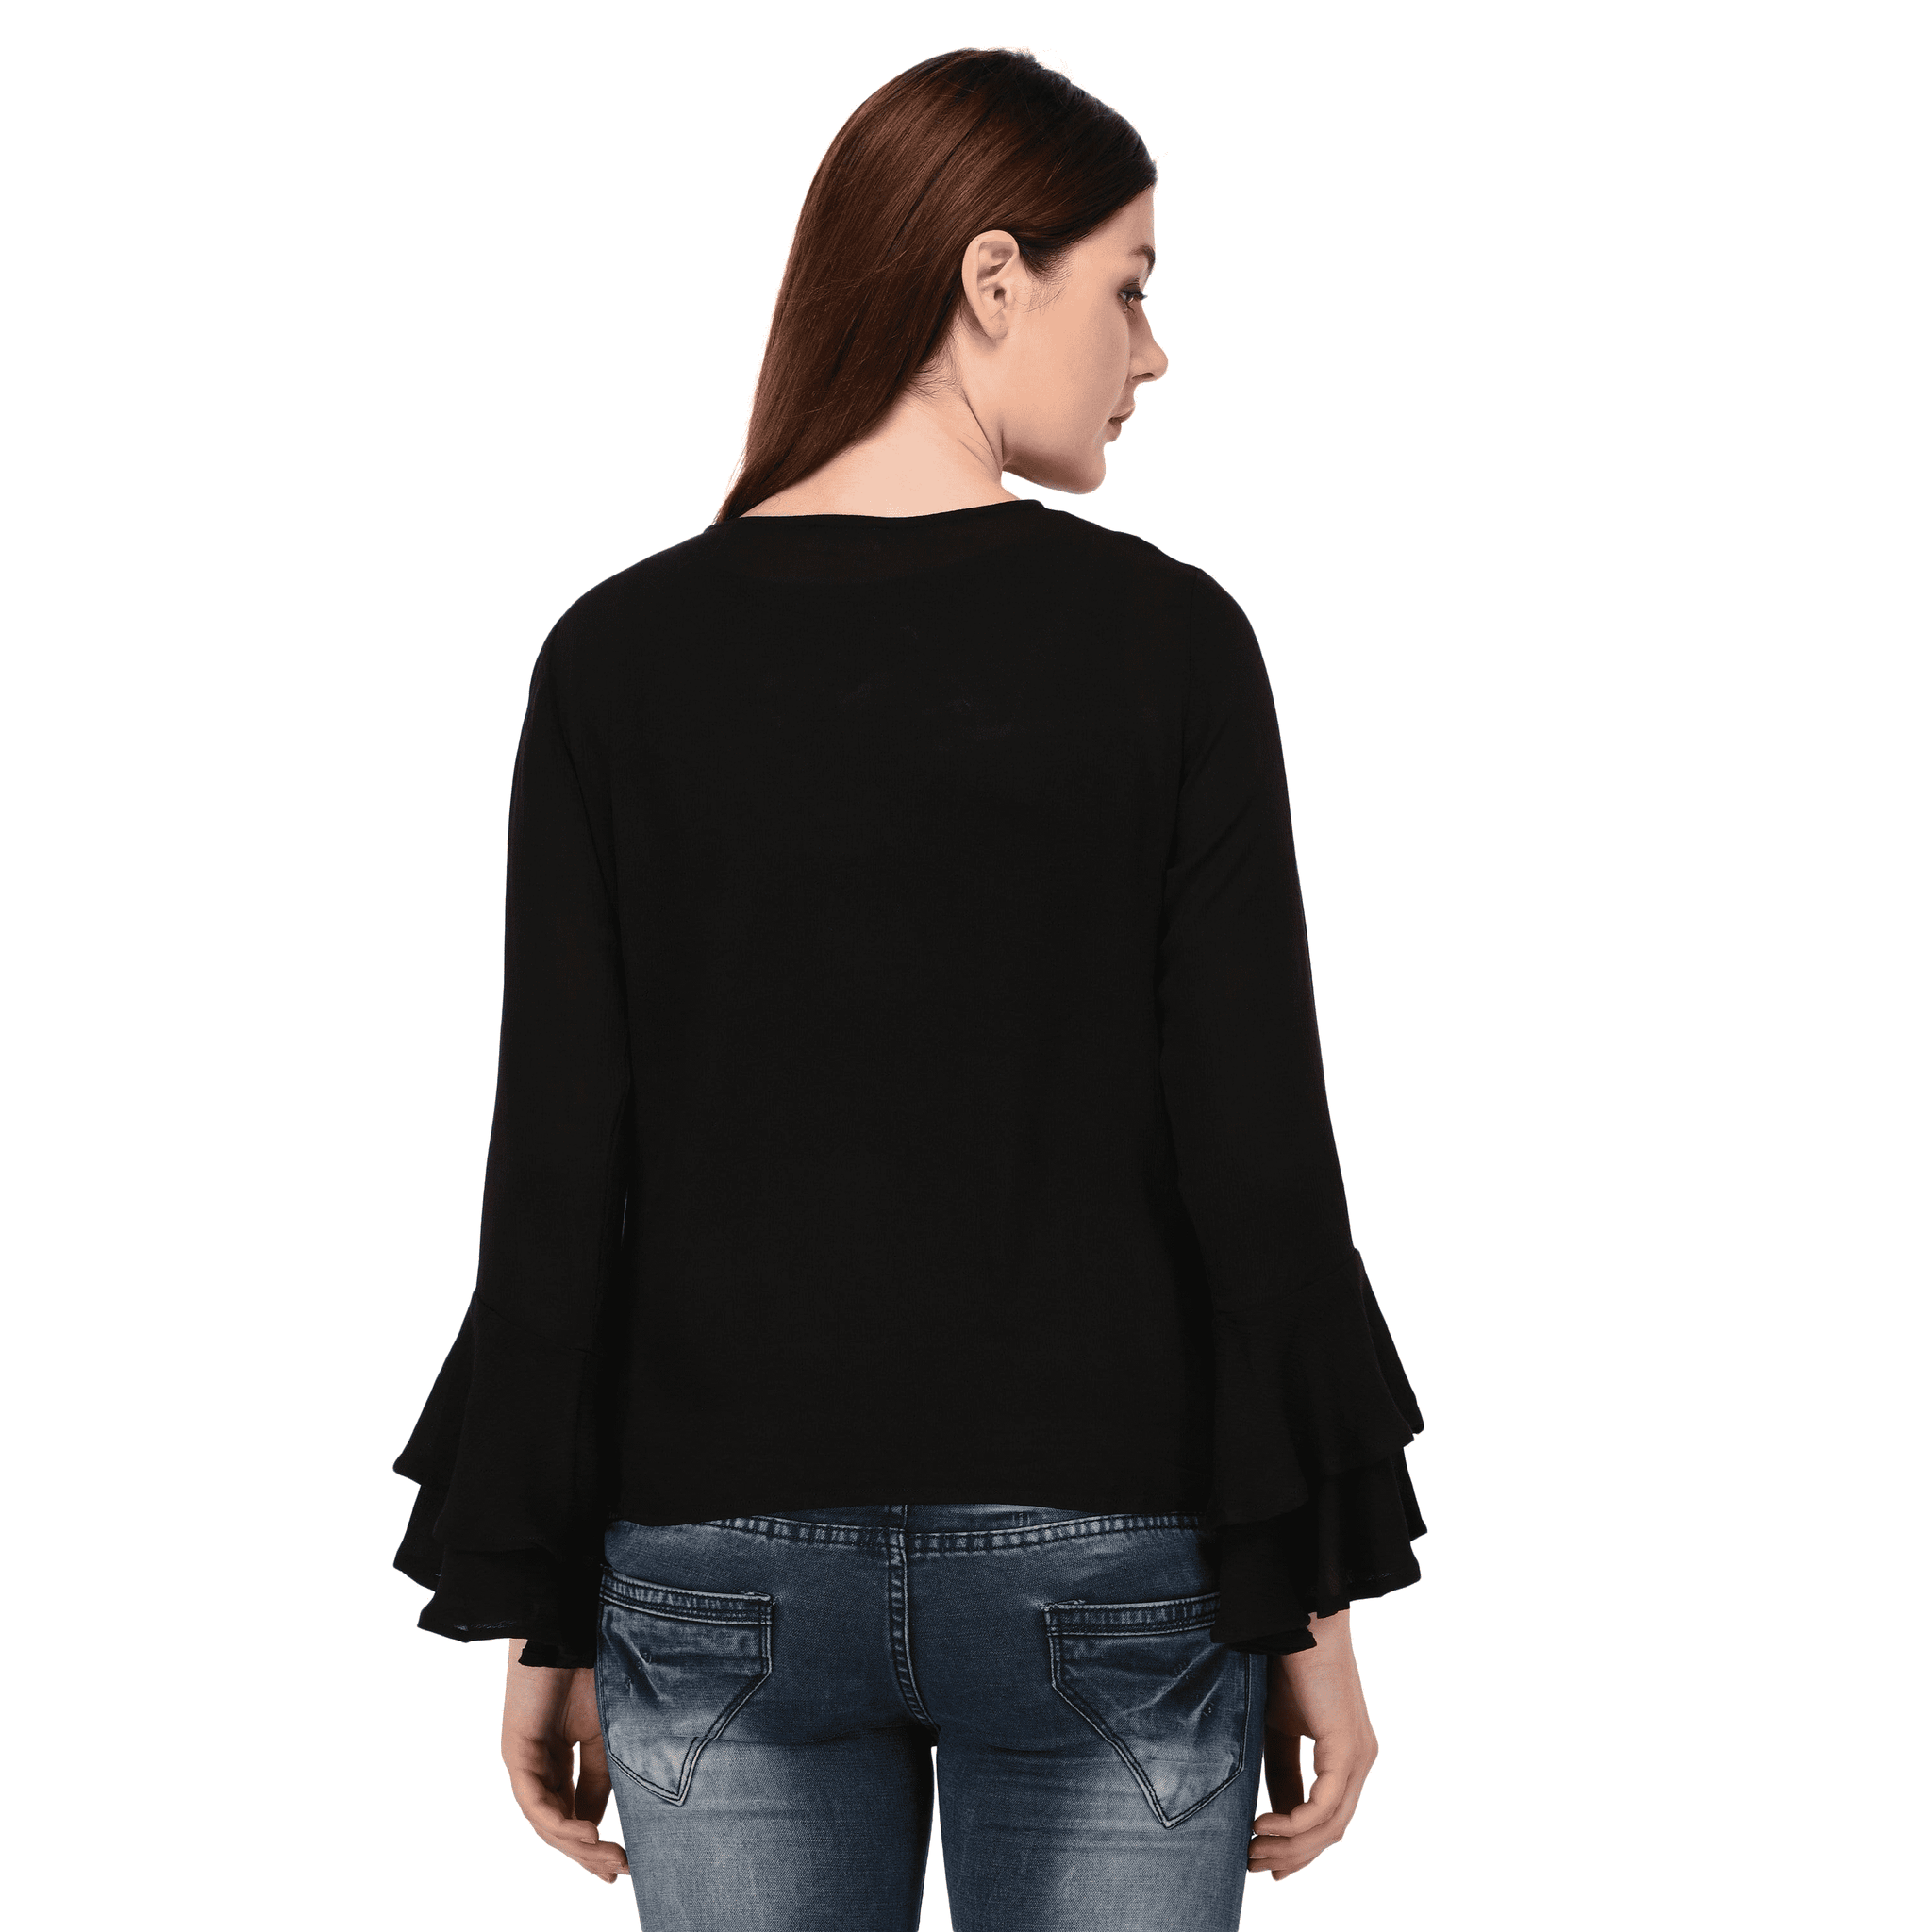 Double Bell Sleeves Top Black - NIXX Clothing